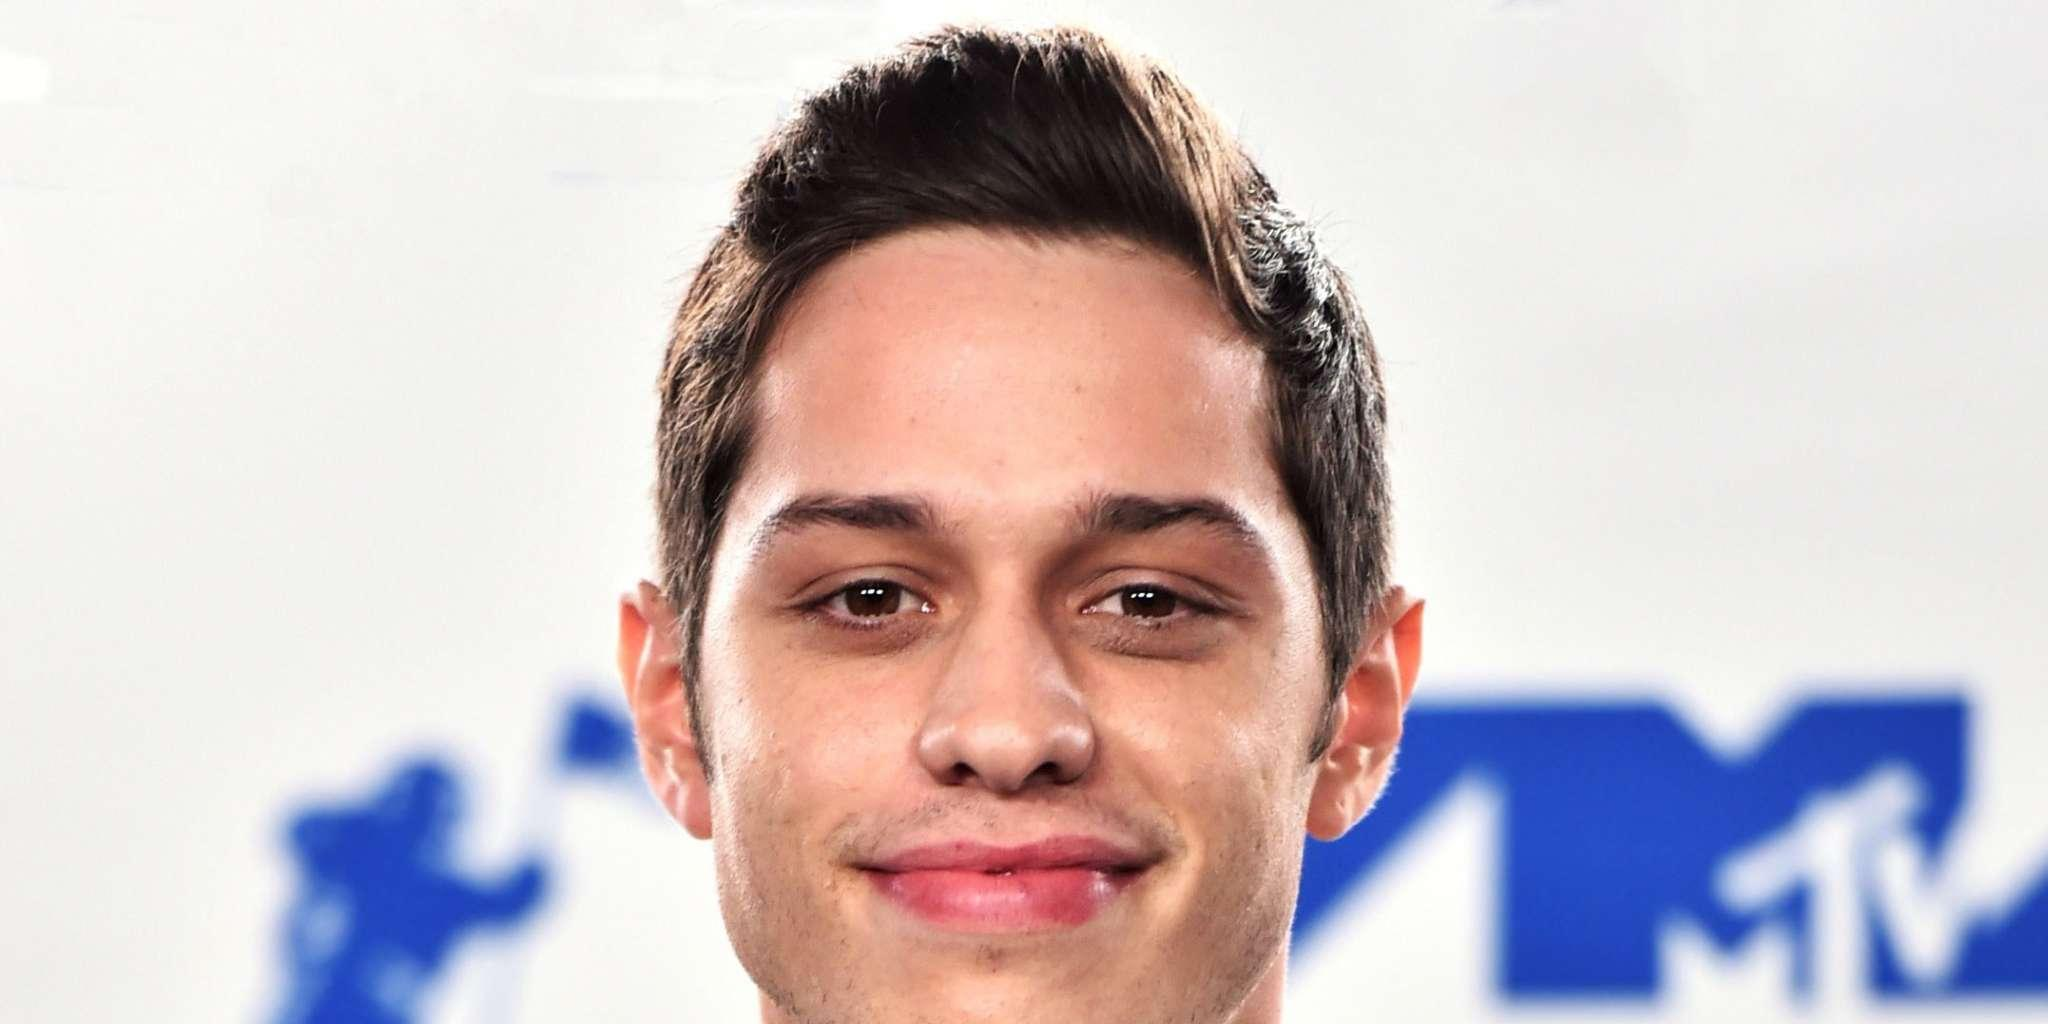 Pete Davidson's Fans Will Be Happy To Know That He's Doing Fine After Worrying Everyone With Suicidal Message